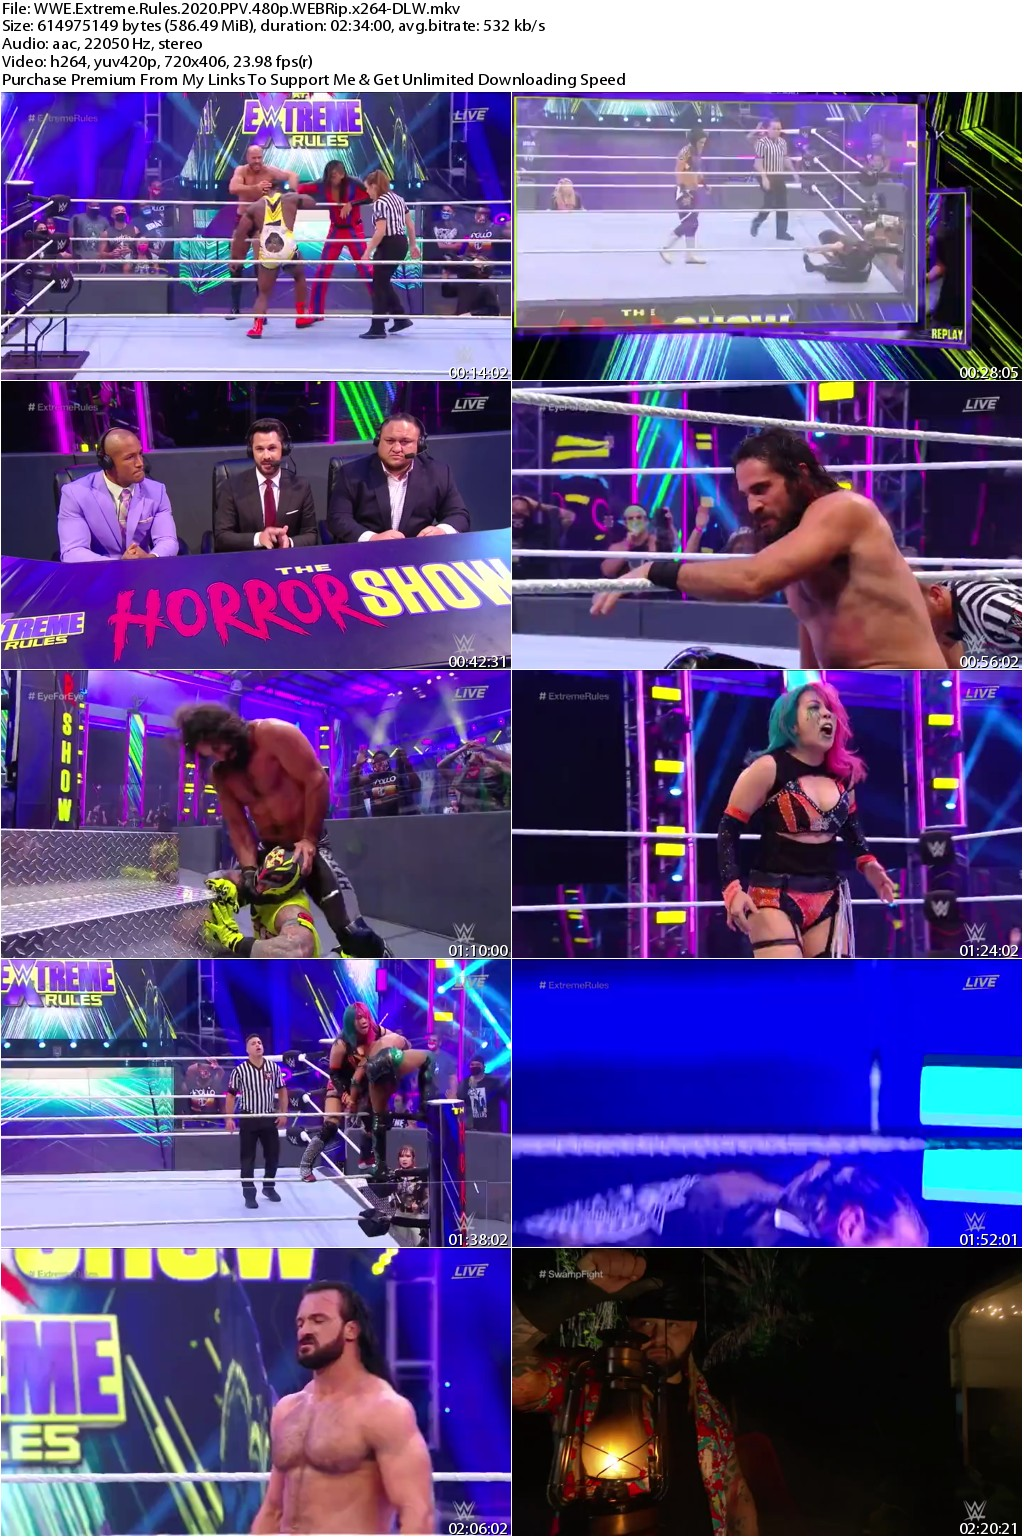 WWE Extreme Rules 2020 PPV 480p WEBRip x264-DLW